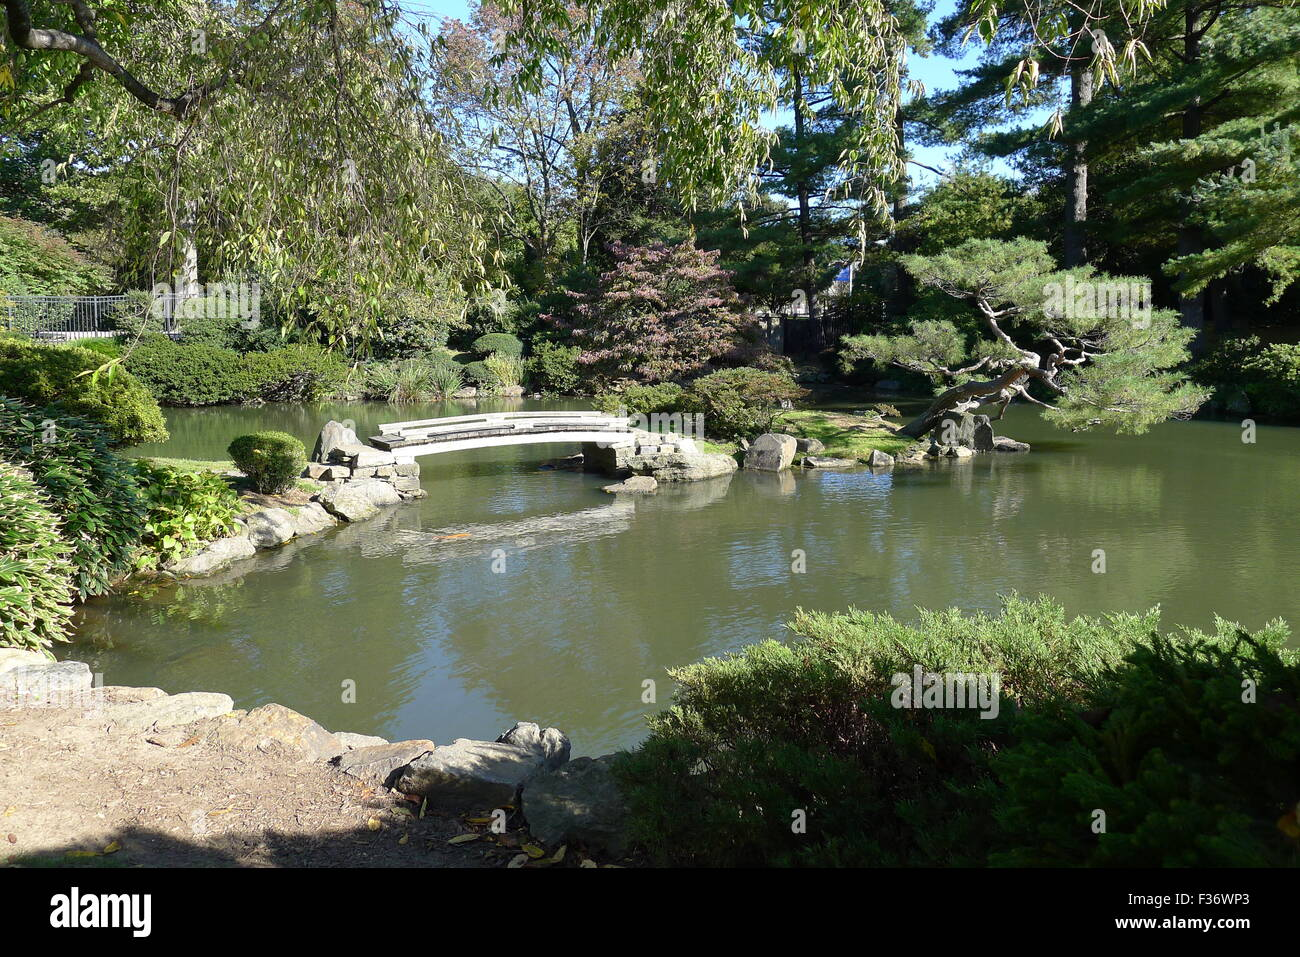 Japanese Garden At Fairmount Park Philadelphia Stock Photo 88047739 Alamy